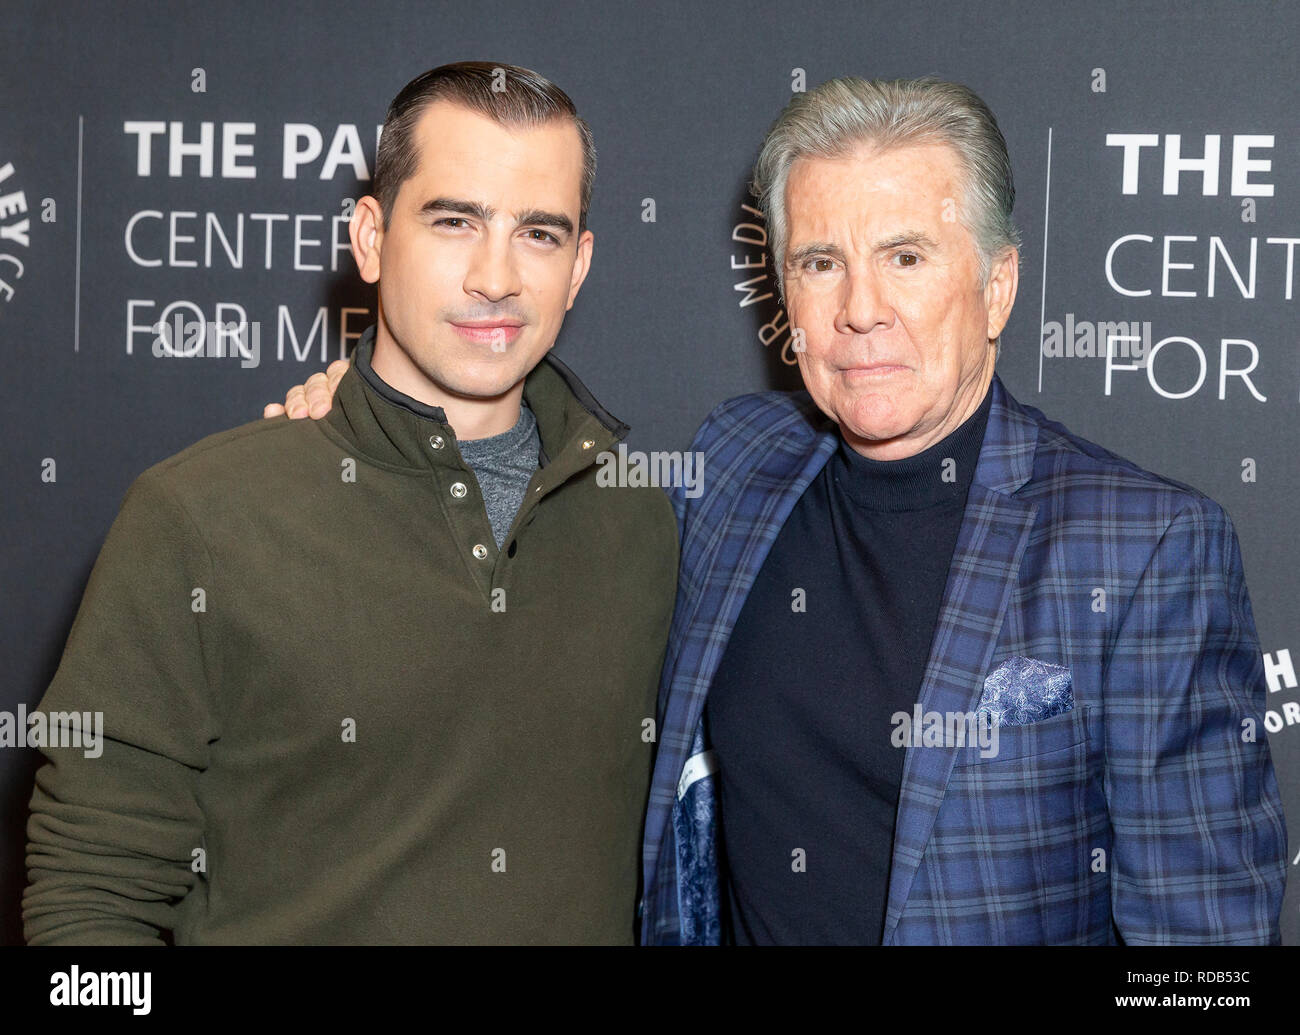 Callahan Walsh High Resolution Stock Photography And Images Alamy Callahan has 3 jobs listed on their profile. https www alamy com new york united states 16th jan 2019 callahan walsh and john walsh attend in pursuit with john walsh screening conversation at the paley center for media credit lev radinpacific pressalamy live news image231970800 html